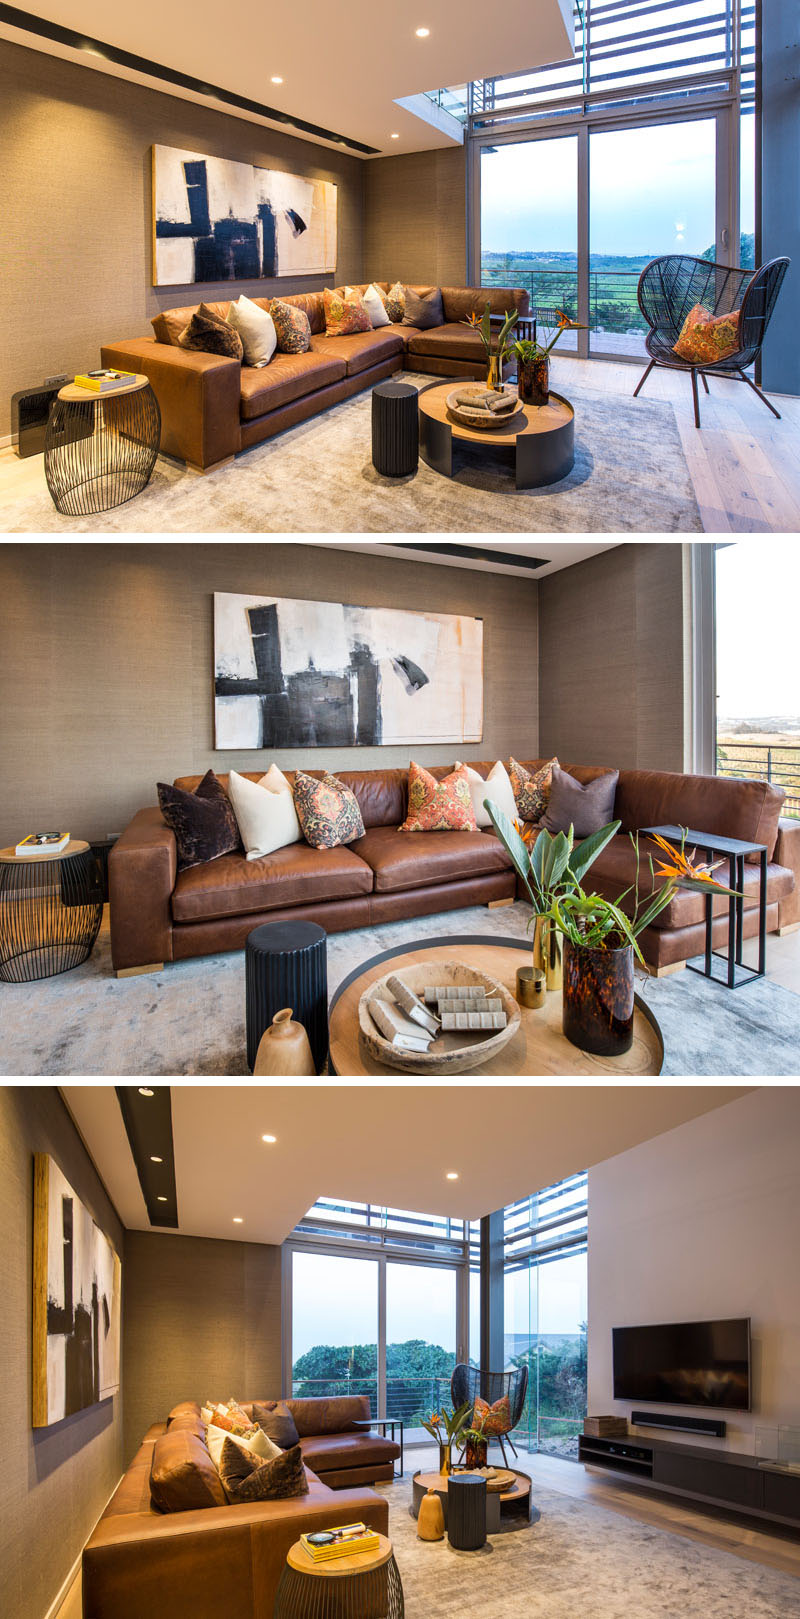 Back Inside Theres Another Living Room This Time A Large L Shaped Brown Leather Couch And Black Detailed Chair Provide Seating